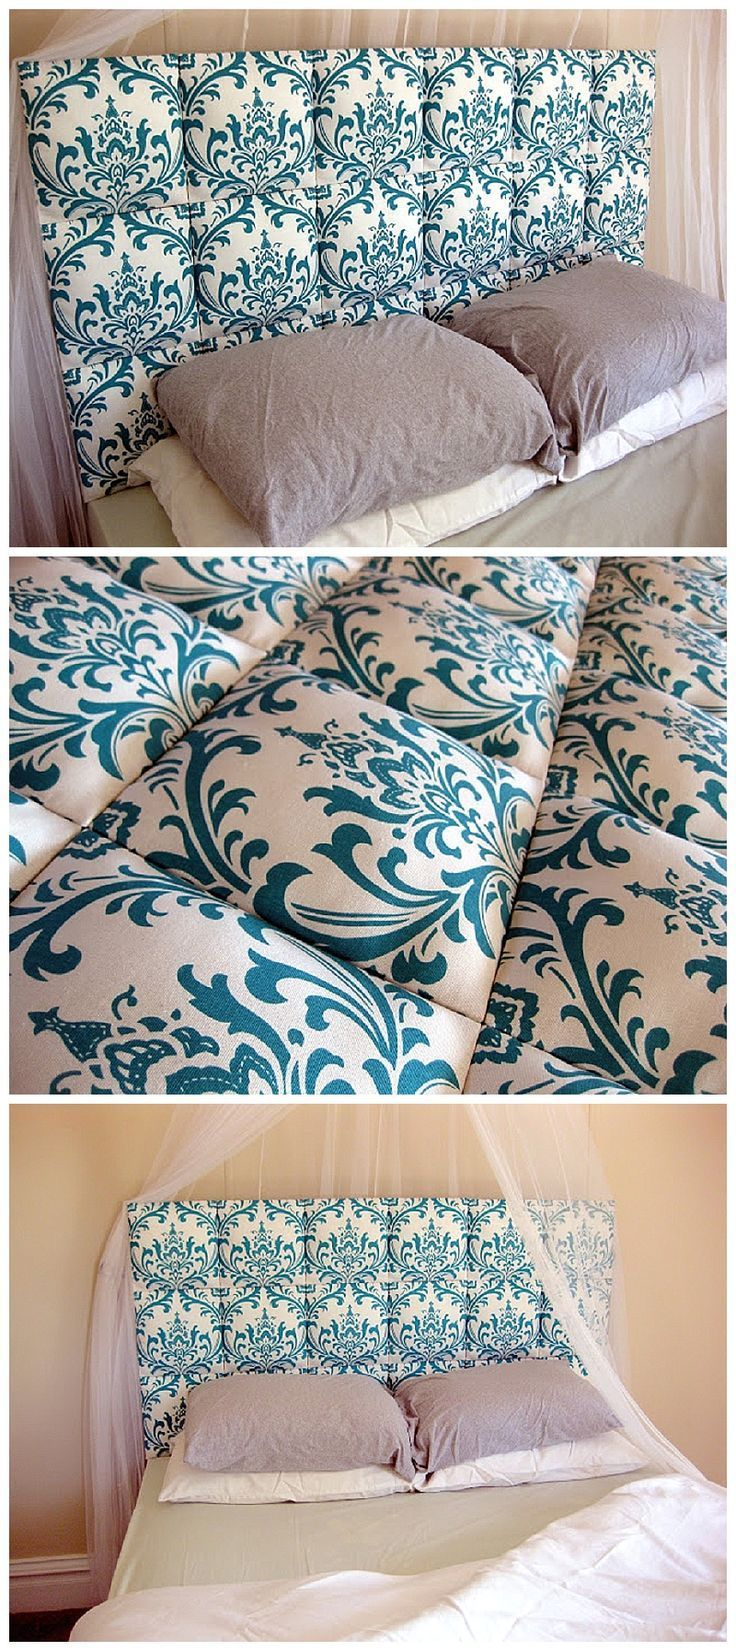 Slaapkamer Fabric Easy Upholstered Tufter Headboard Tutorial Diy Repolstering